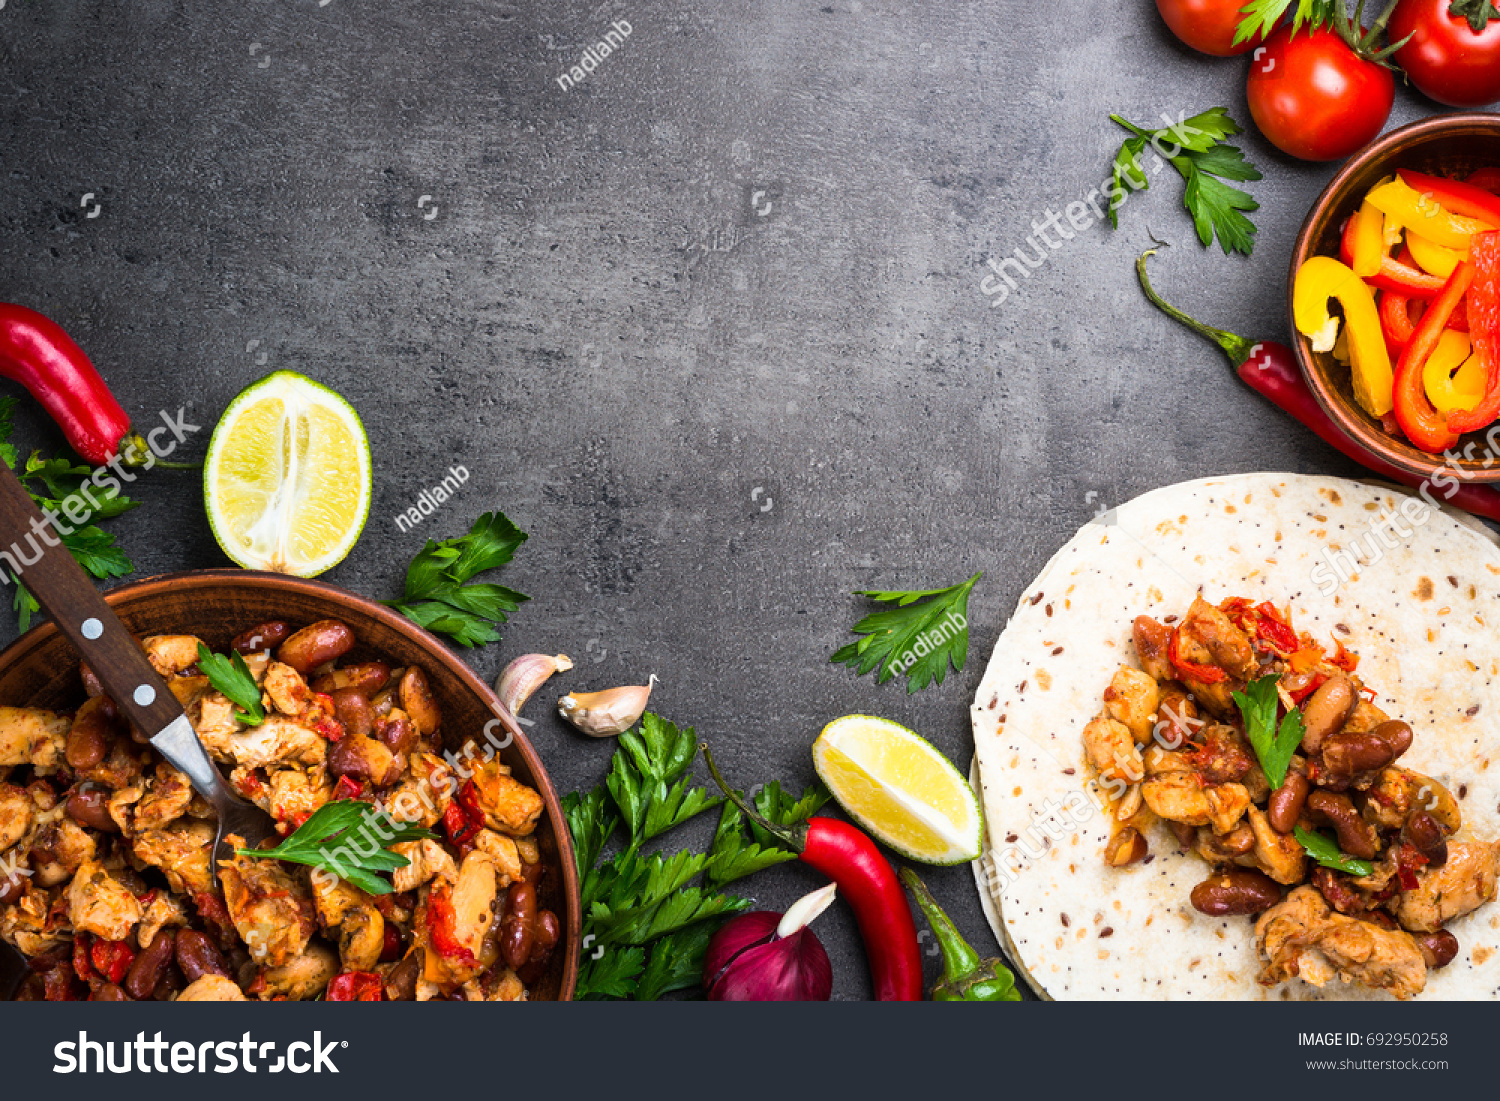 Cooking mexican taco meat beans vegetables stock photo royalty free cooking mexican taco with meat beans and vegetables at black stone table latin american food forumfinder Choice Image